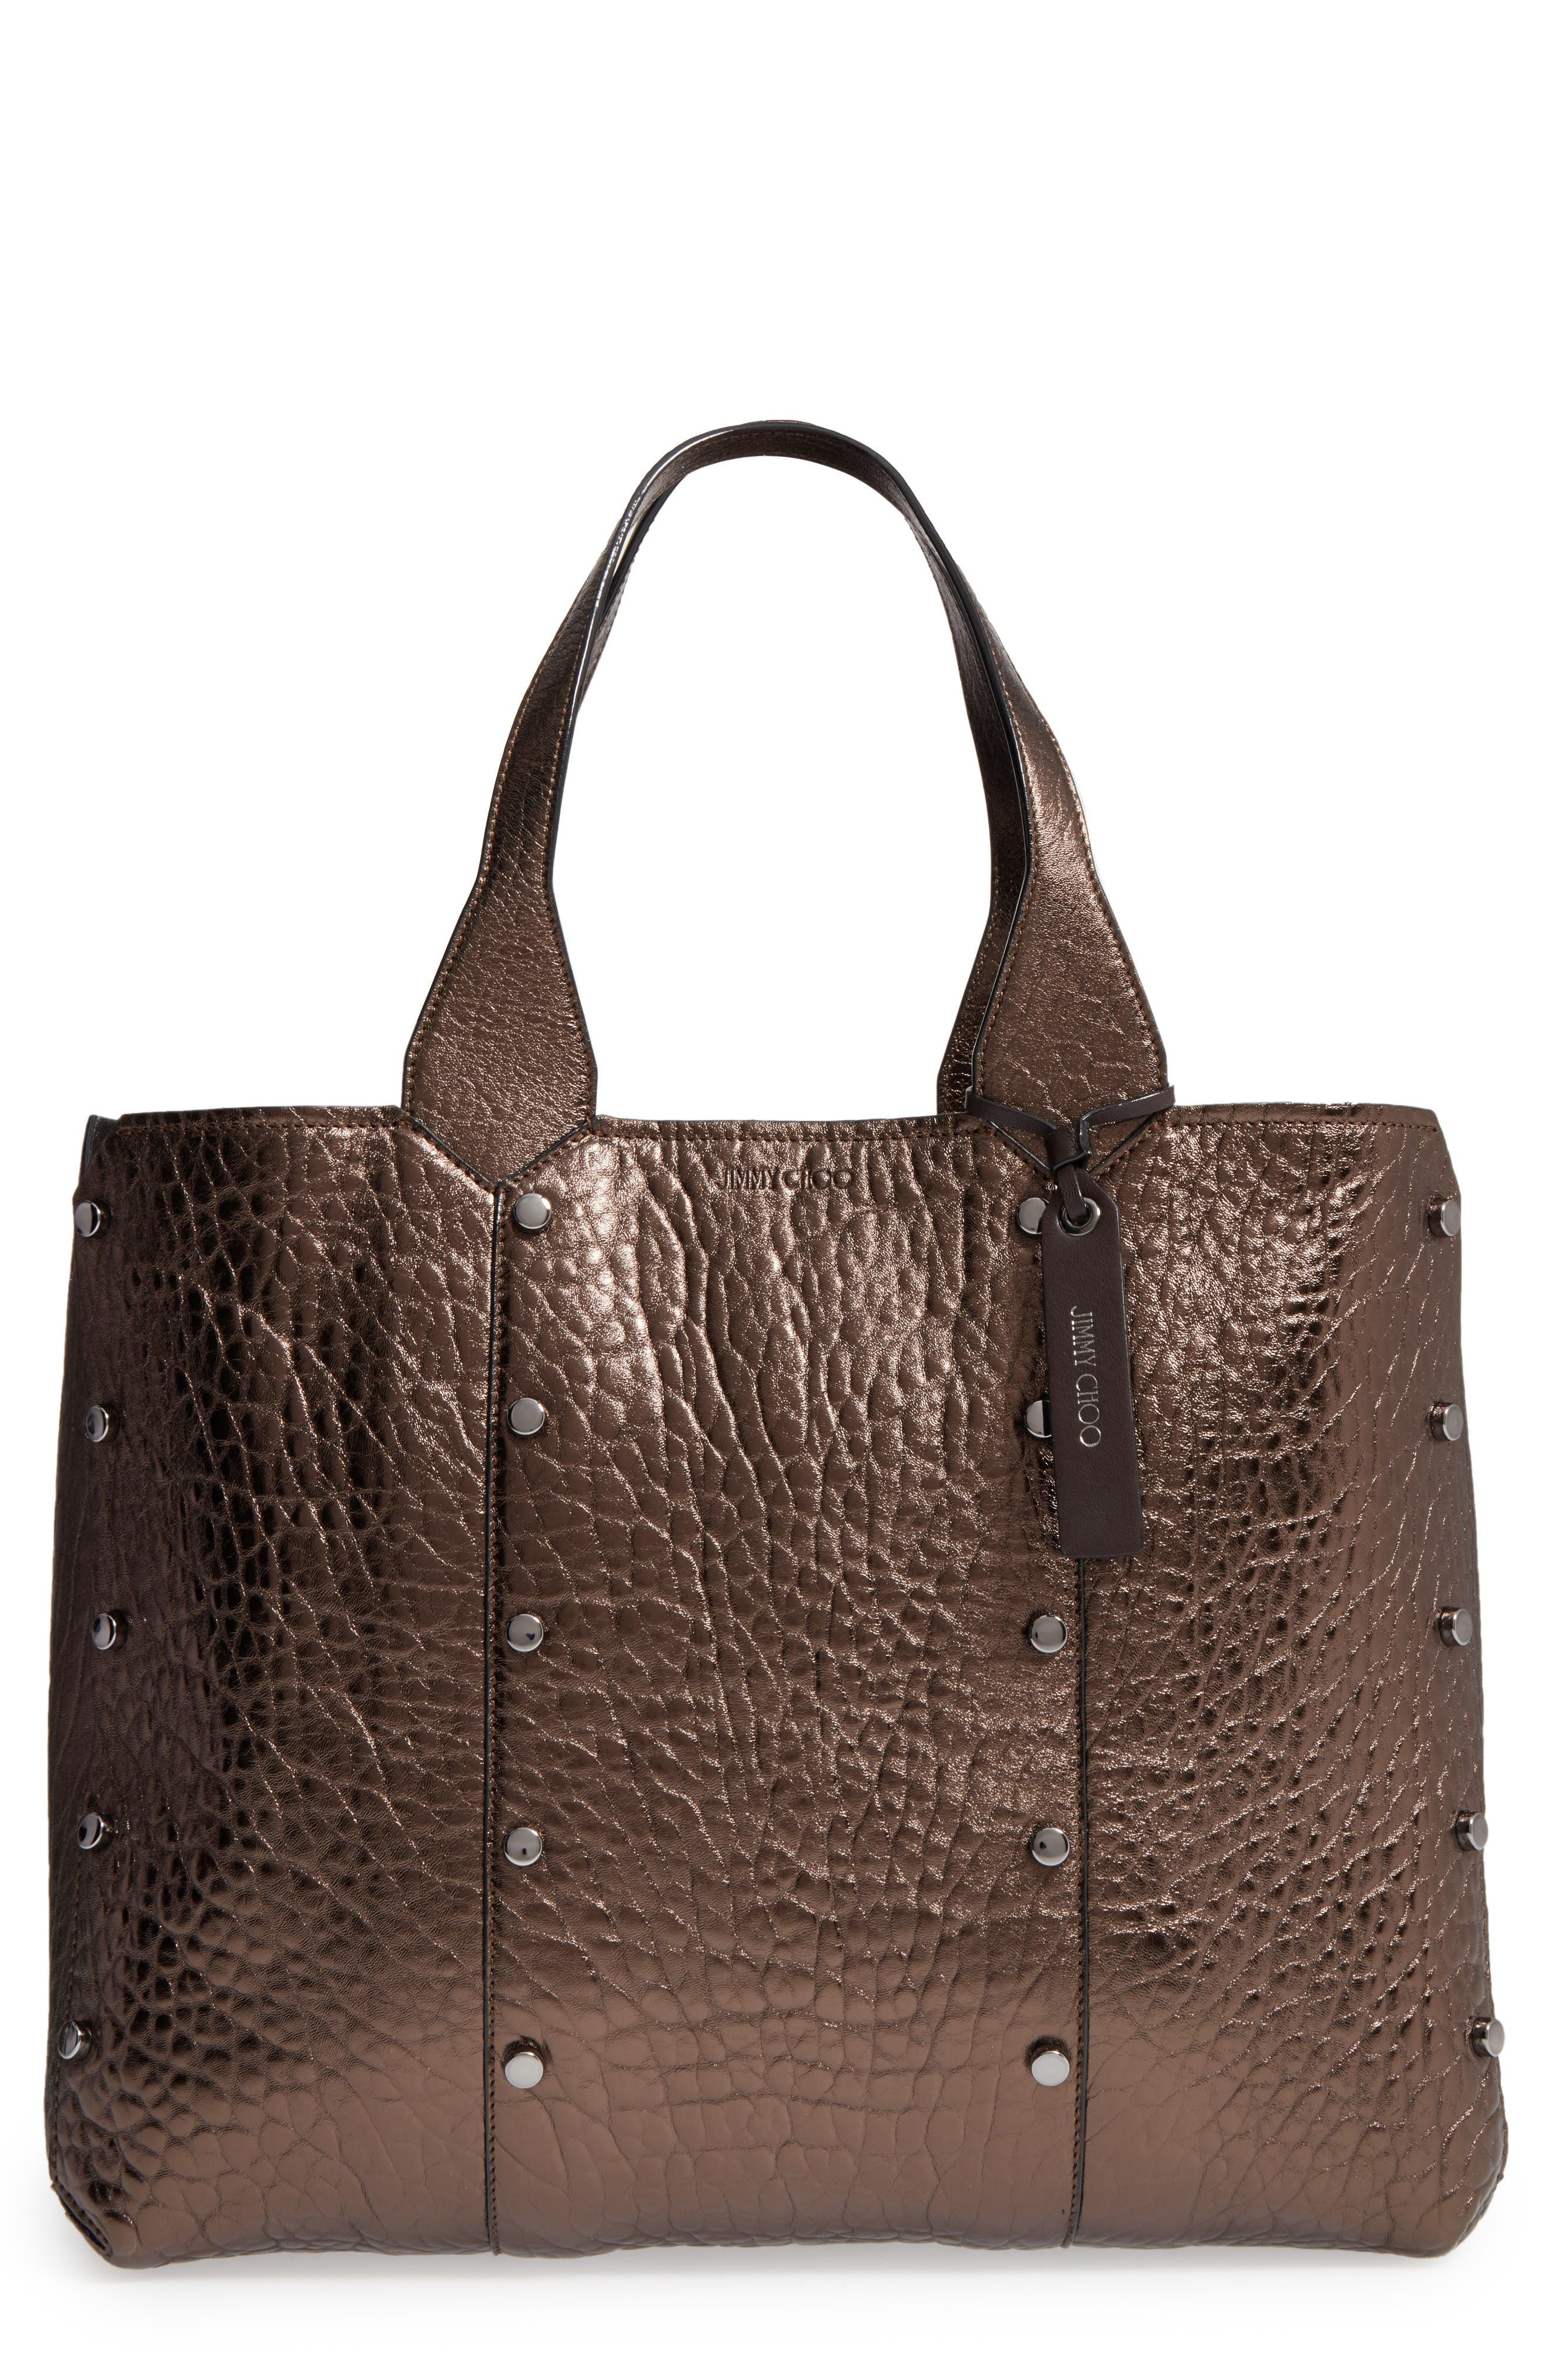 Jimmy Choo Lockett Metallic Leather Shopper